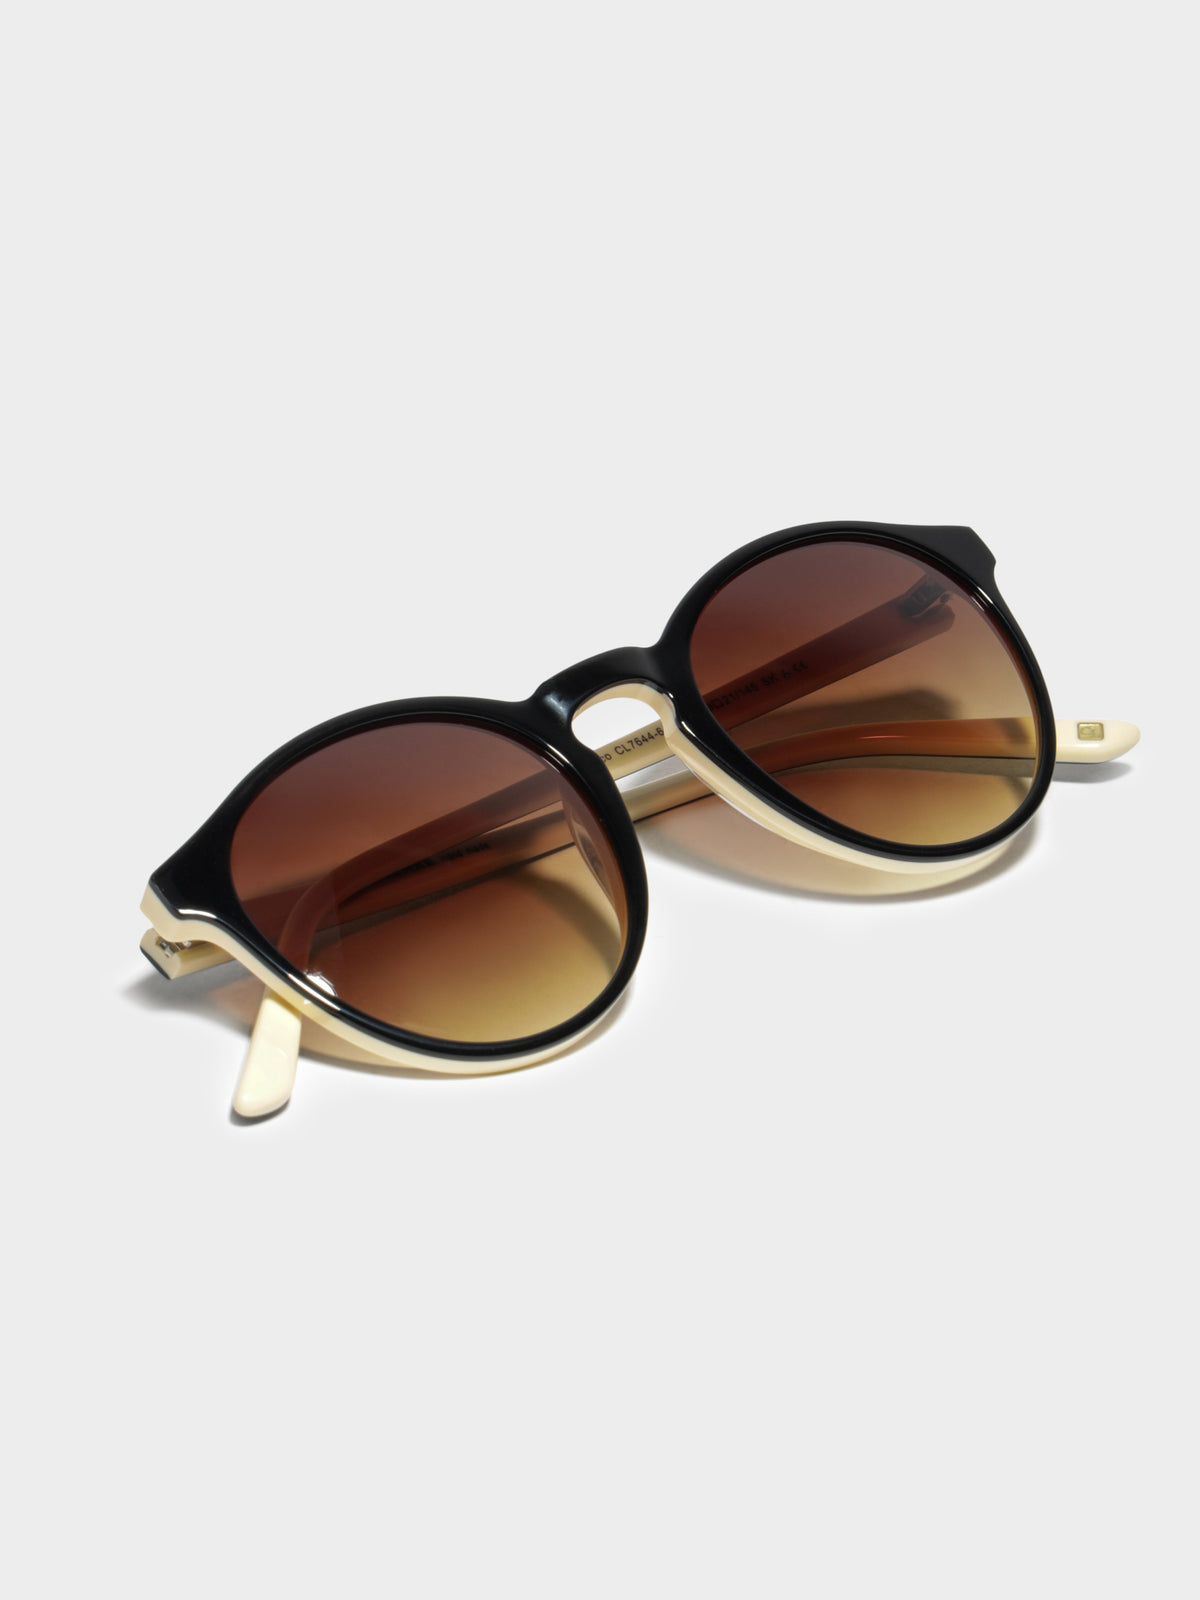 CL7644 Paco Sunglasses in Black Beige